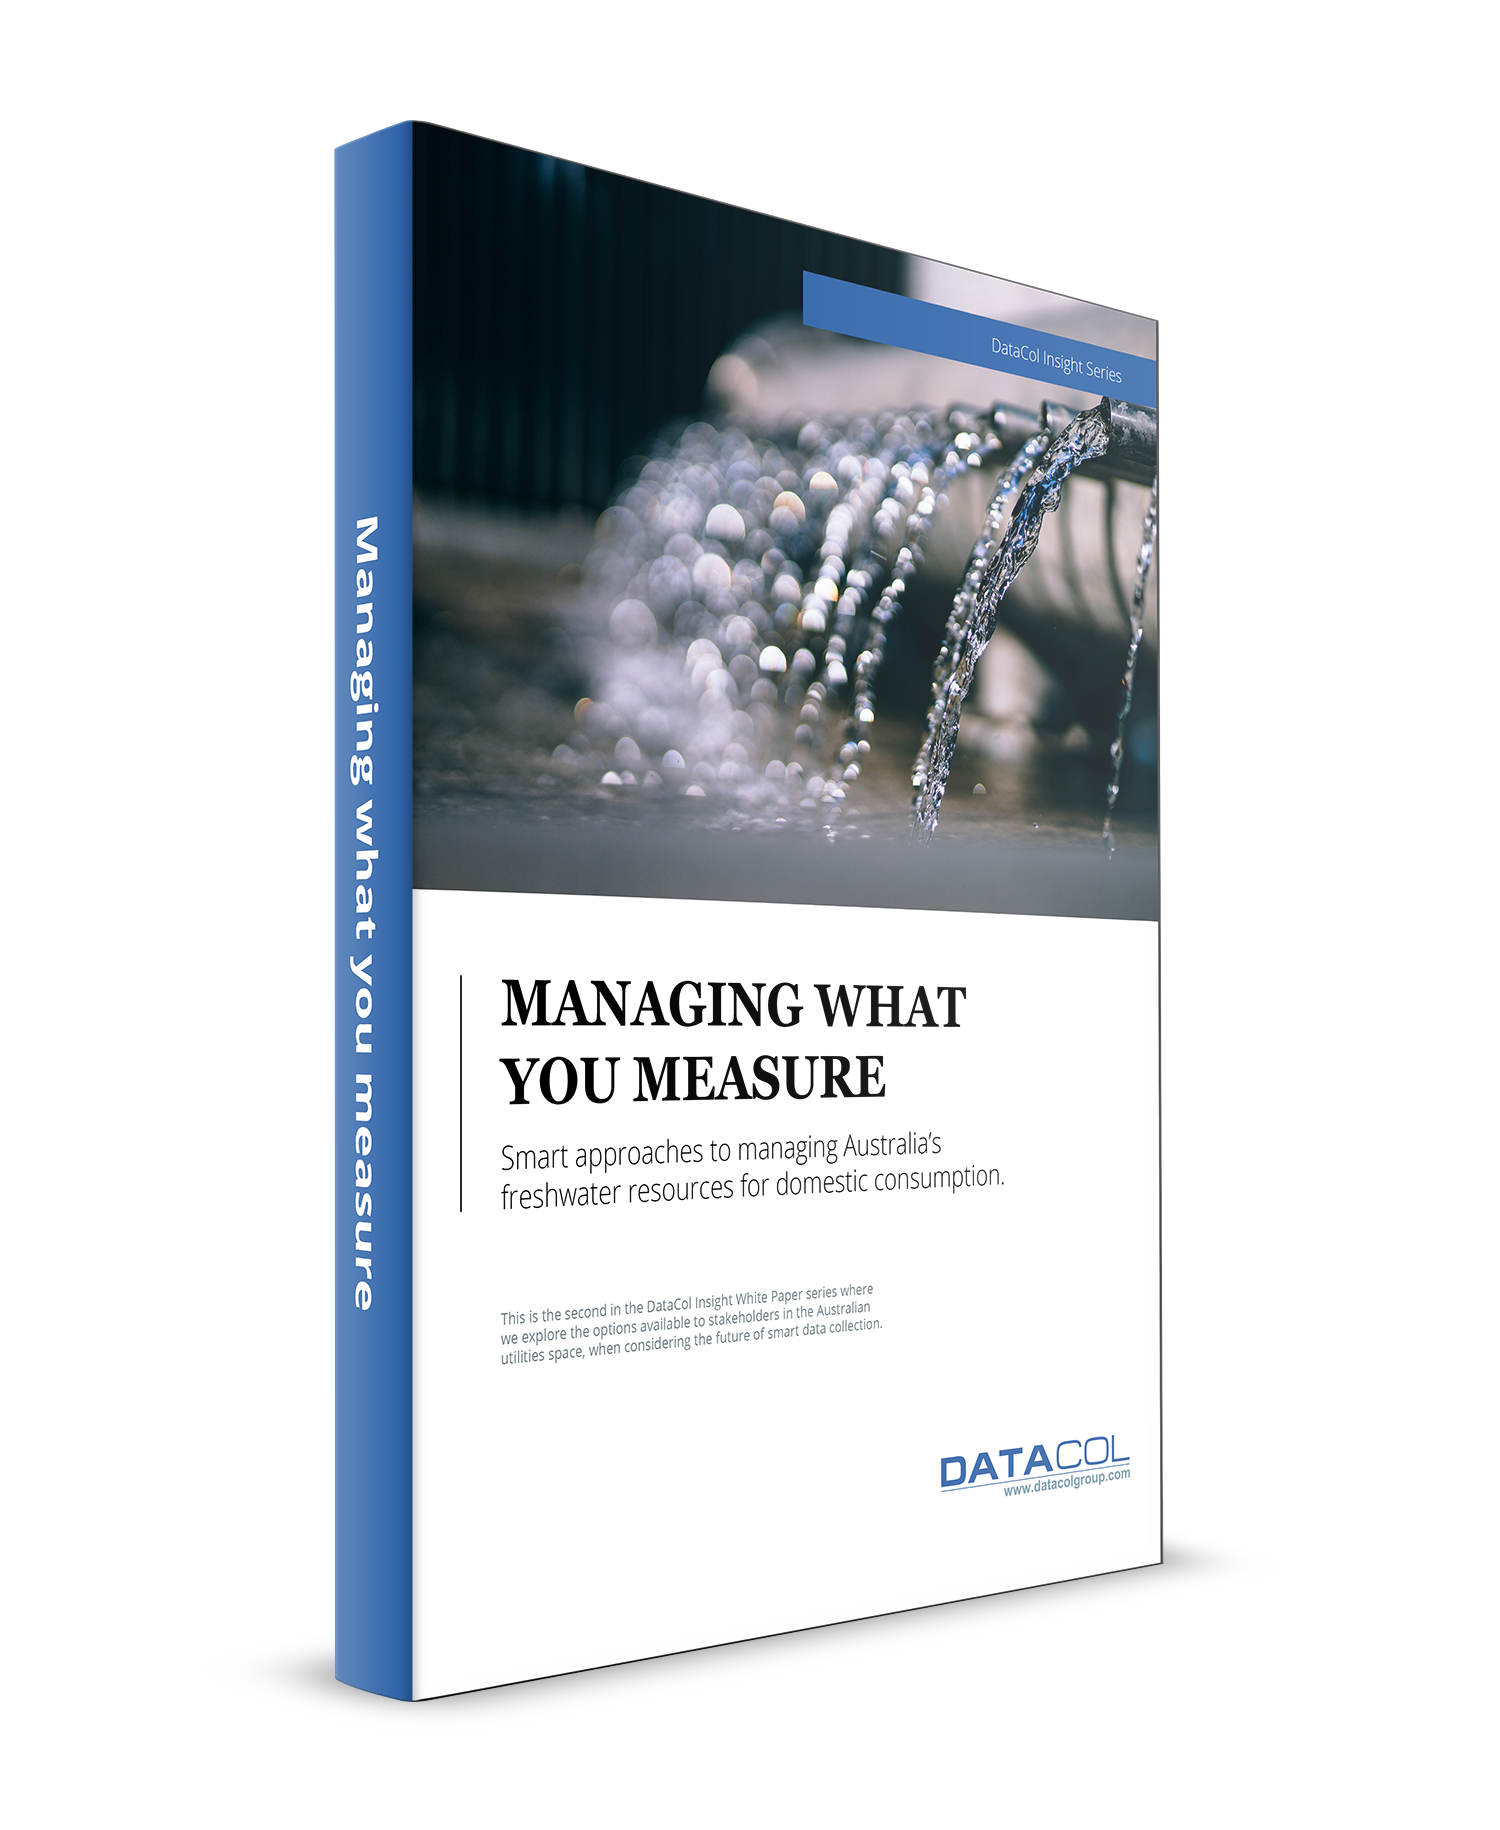 3Dcover-DataCol AUS-WP#2-water-managing-what-you-measure.png